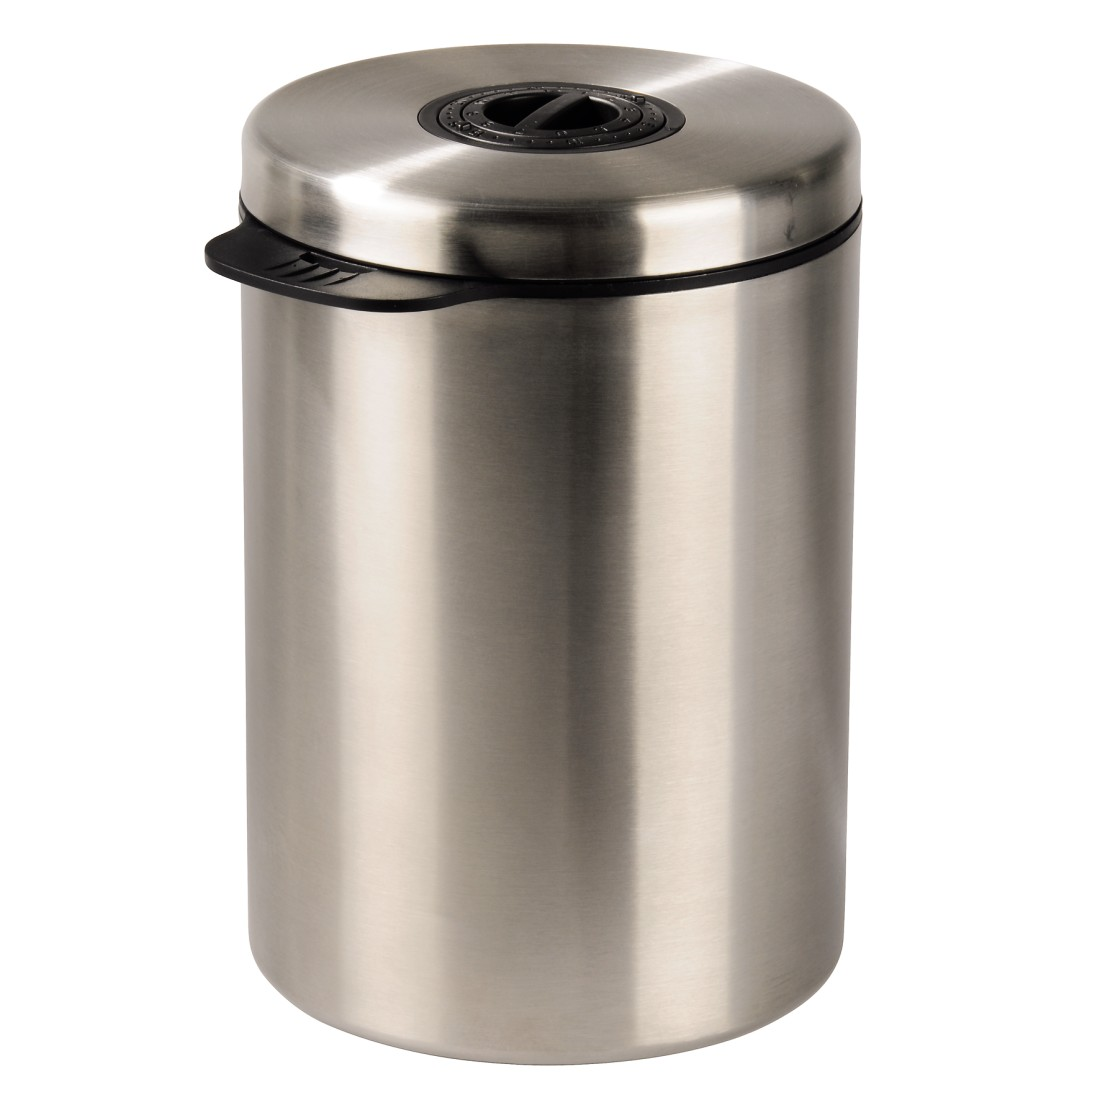 abx High-Res Image - Xavax, Stainless Steel Container for 1 kg of Coffee Beans